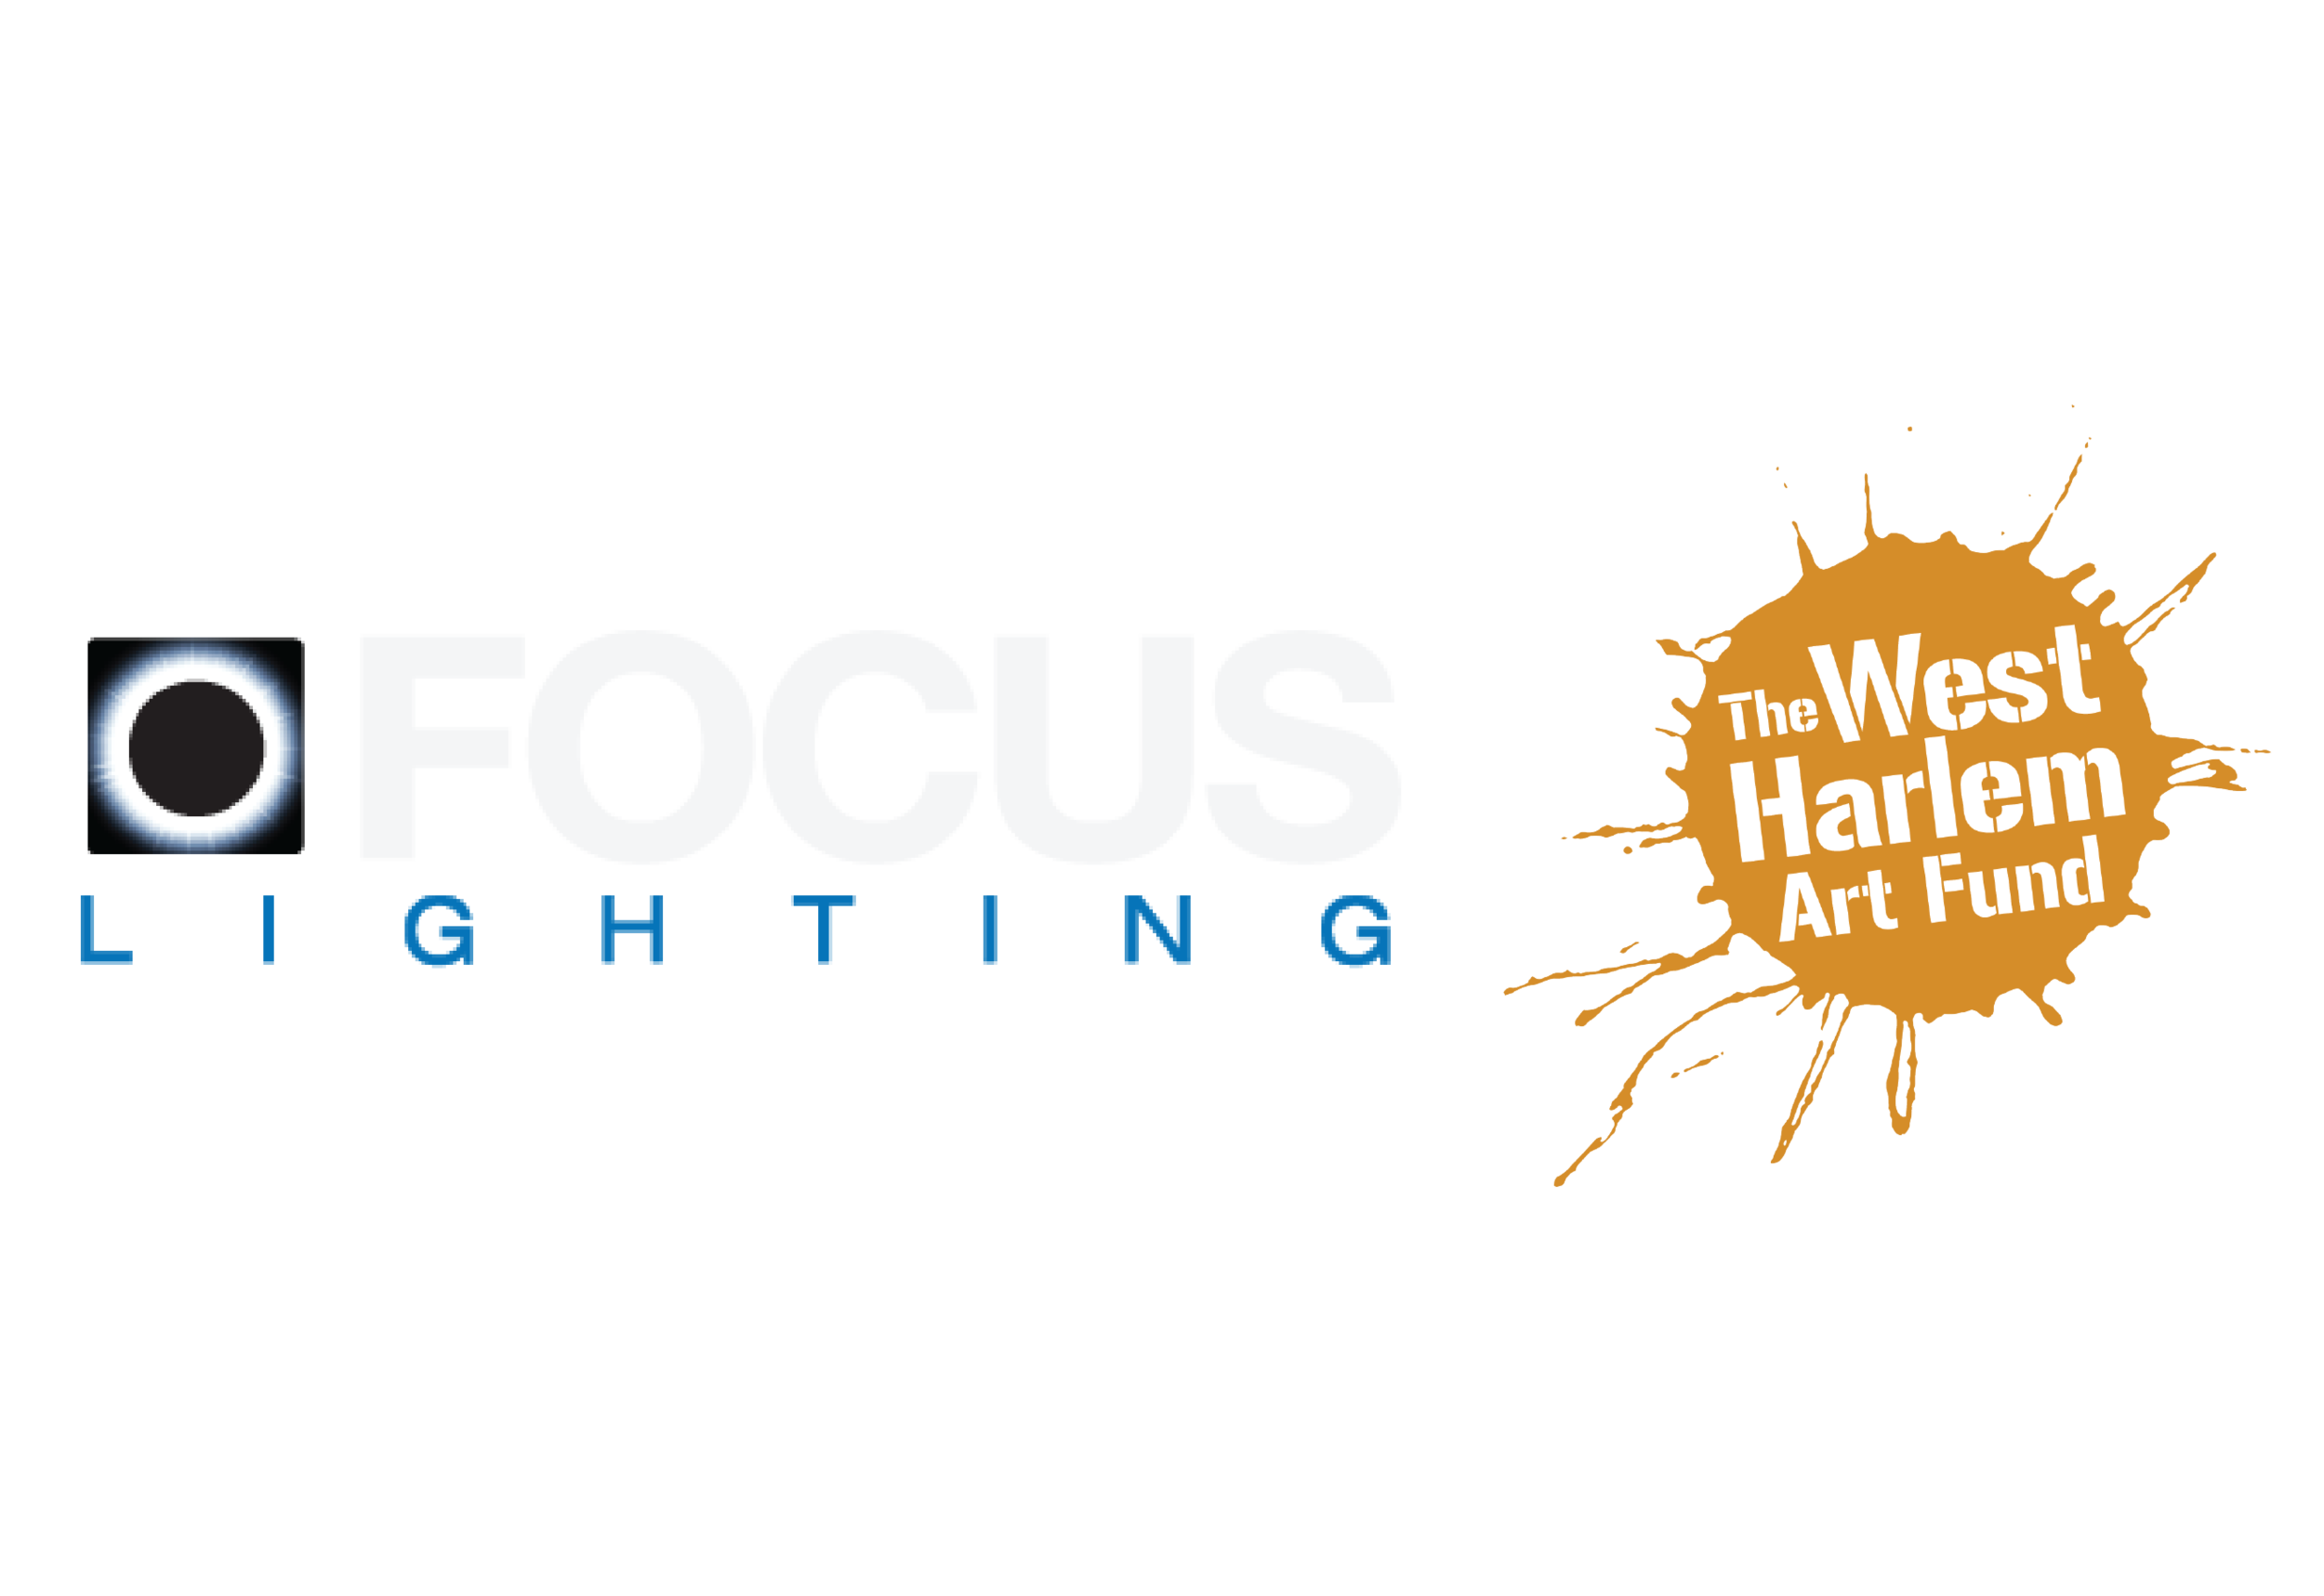 Focus and WHAF Logos Combined-01.png